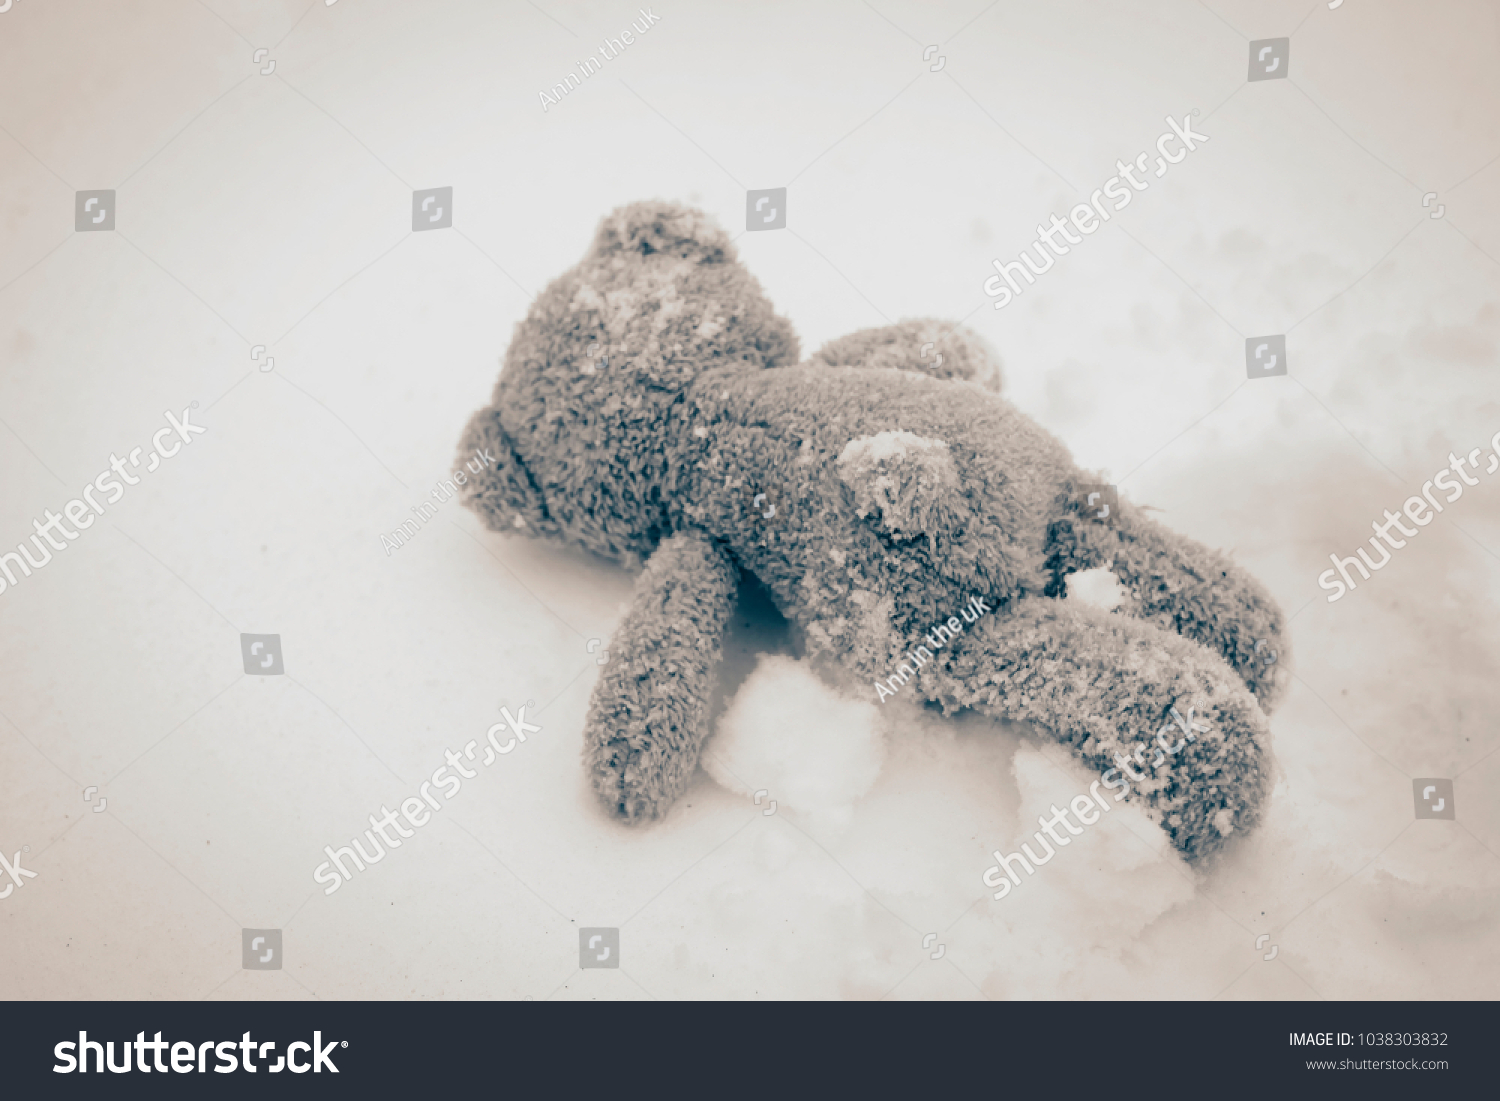 Rear view teddy bear lying alone stock photo safe to use rear view teddy bear lying alone on snow during winter time in vintage filter selective thecheapjerseys Gallery